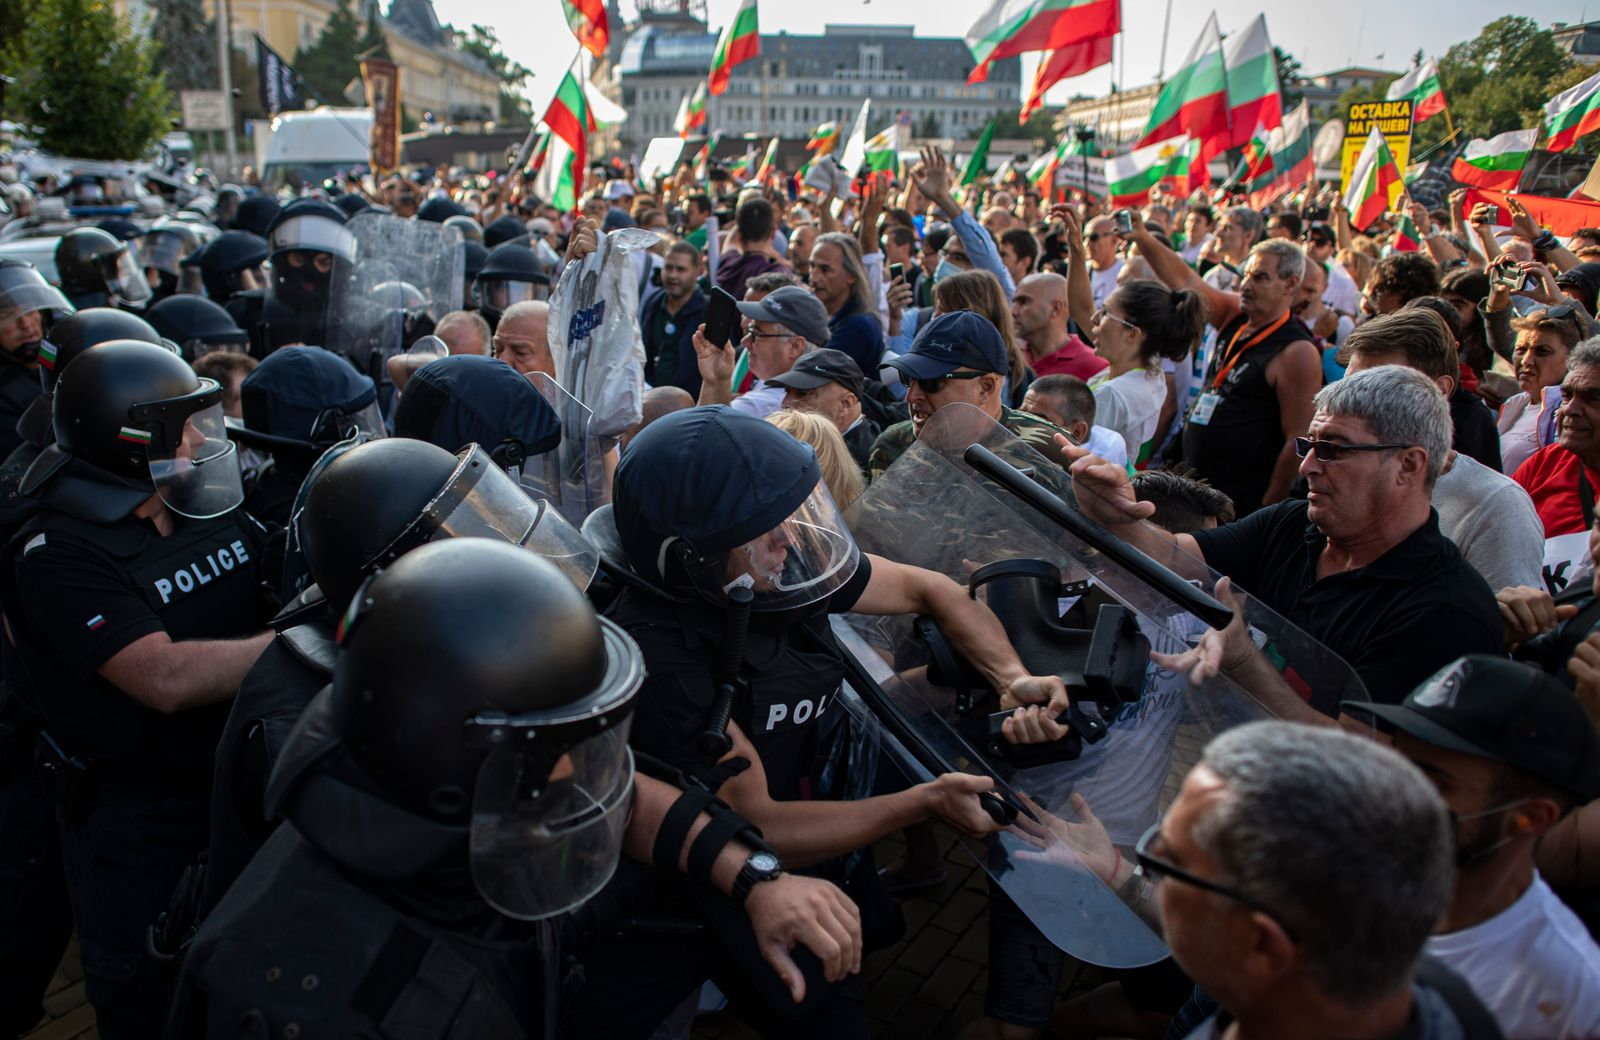 n anti-government protest in in Sofia., Bulgaria - 02 Sep 2020